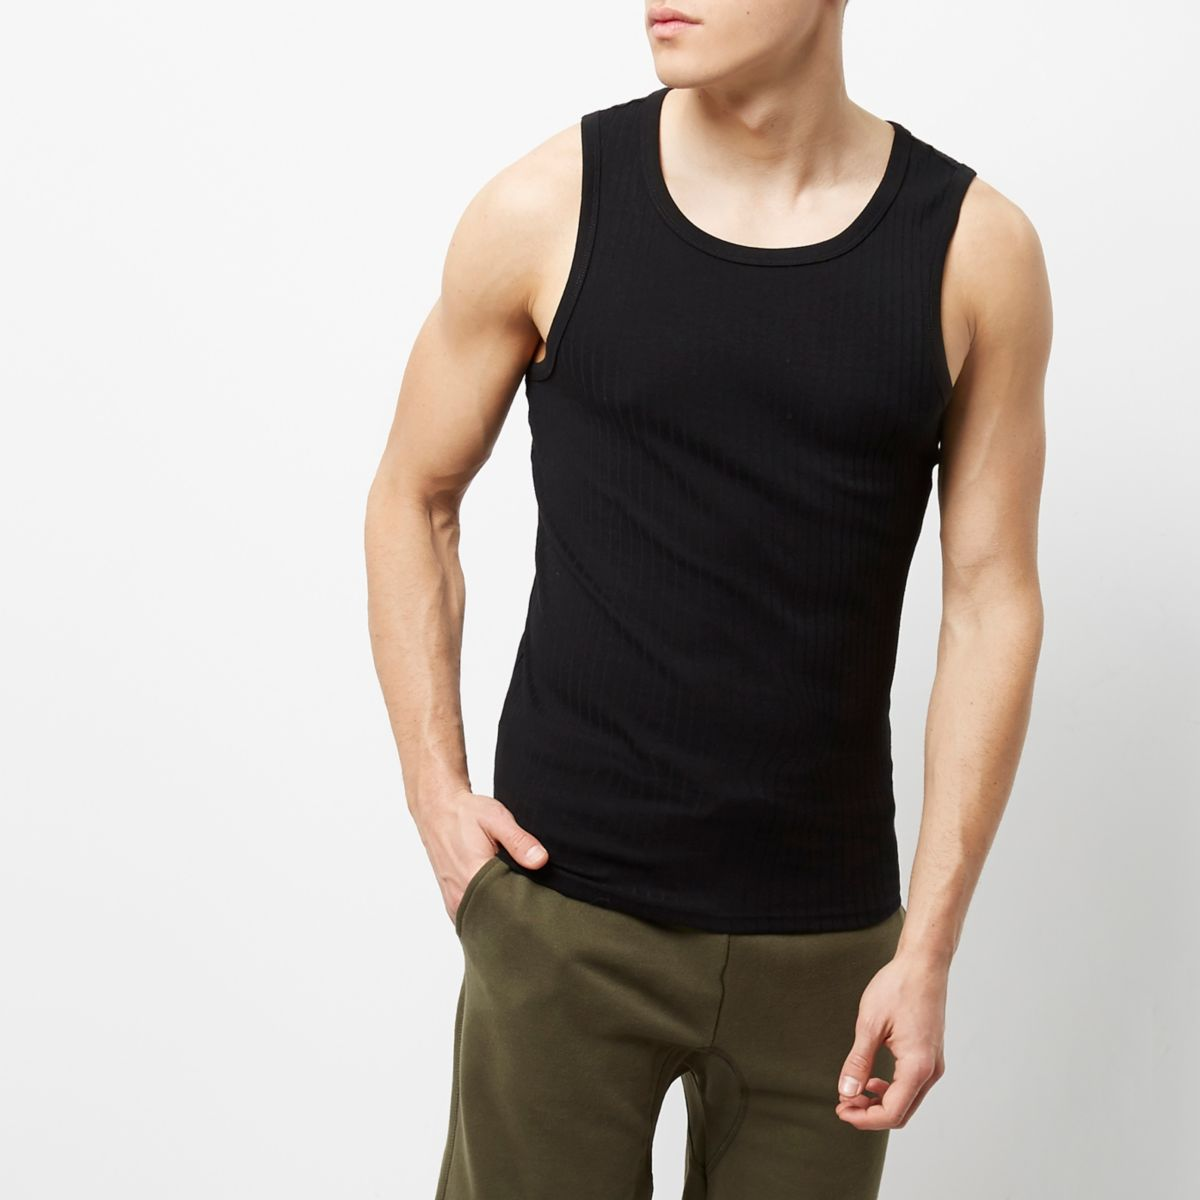 Find great deals on eBay for Mens Slim Fit Vest in Men's Vest and Clothing. Shop with confidence.